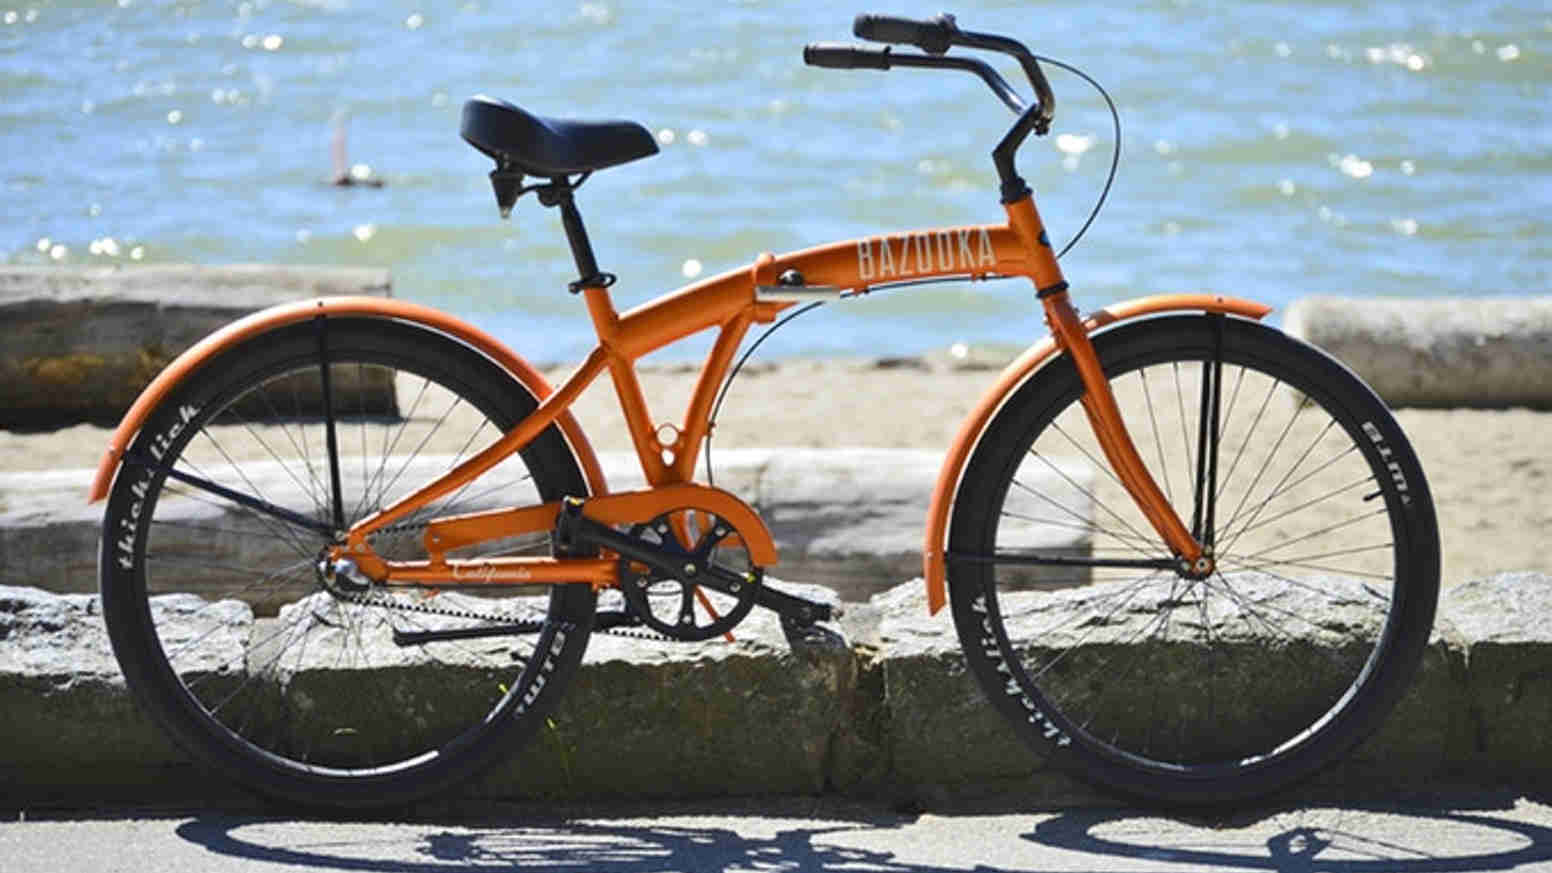 orange cruiser bike parked near the beach